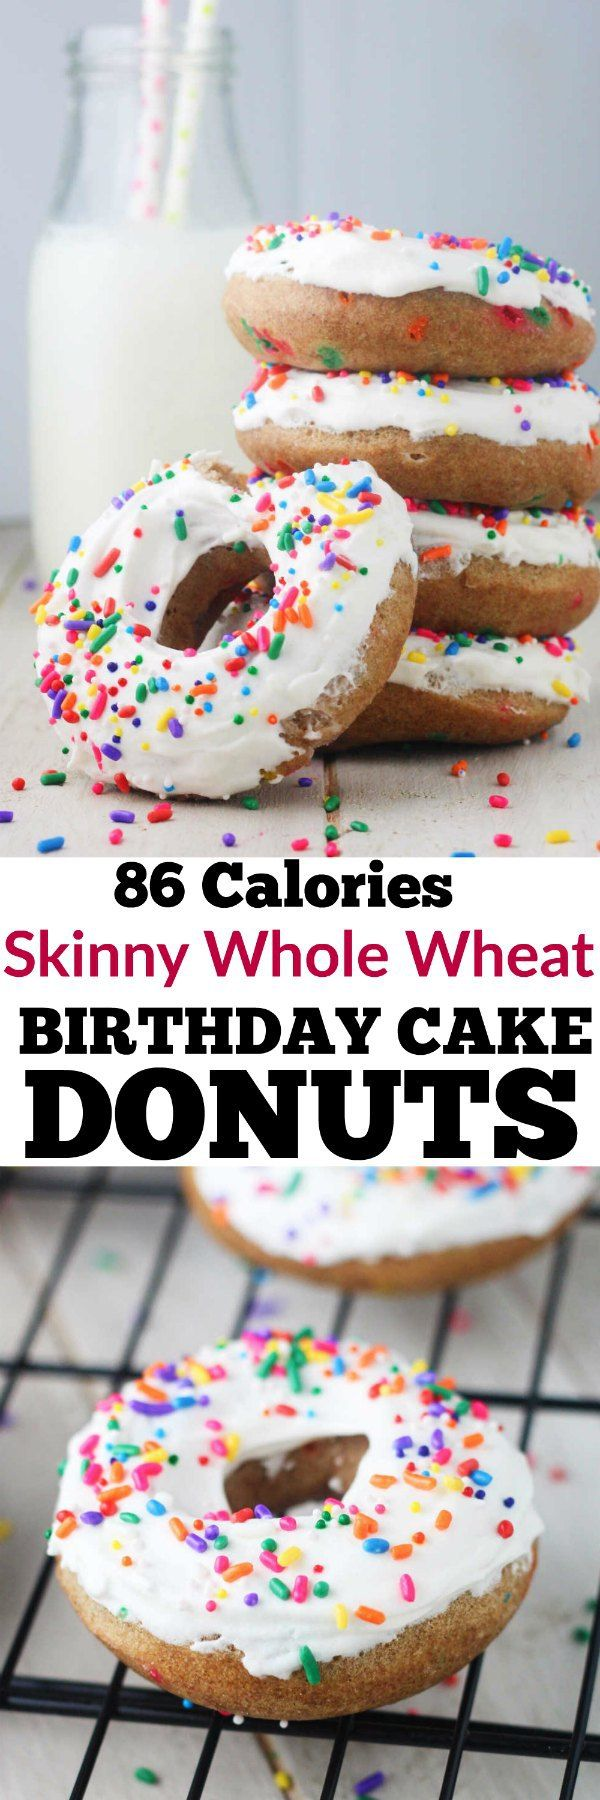 Satisfy your morning sweet tooth with these guilt free, Skinny Whole Wheat Birthday Cake Donuts! www.itscheatdayeveryday.com